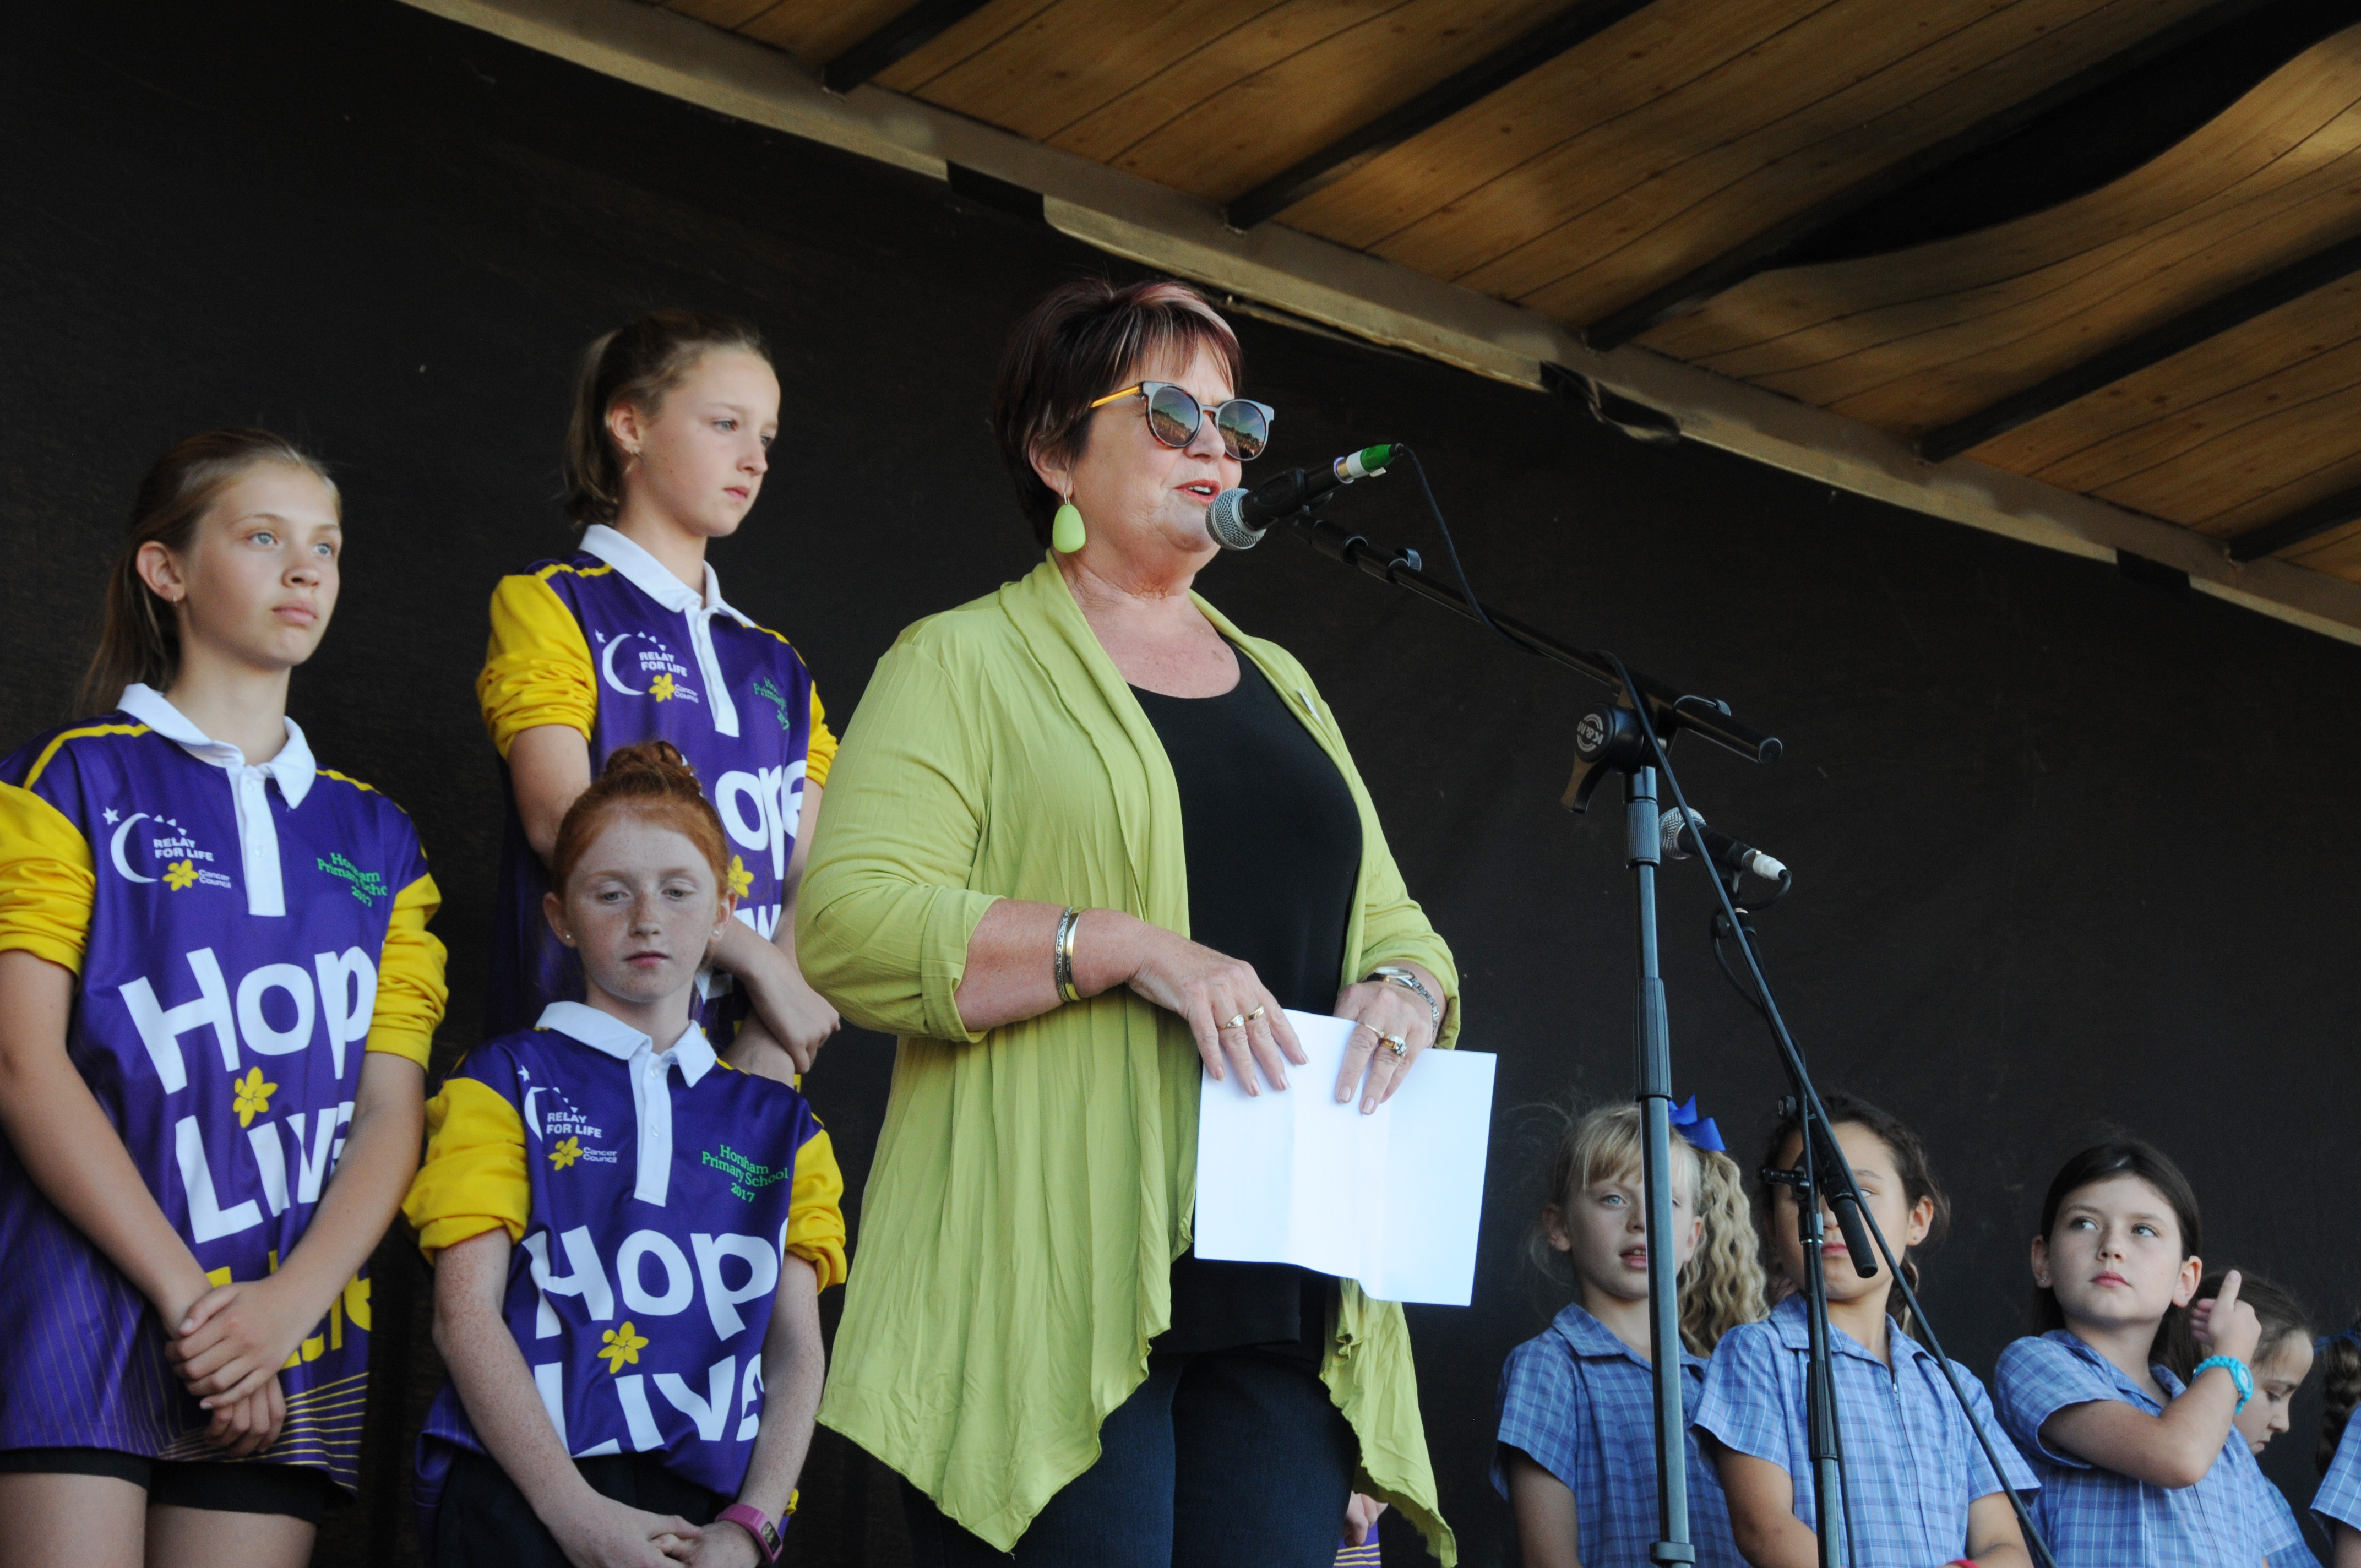 Image - Horsham and District Relay for Life, 170317. Mayor Pam Clarke